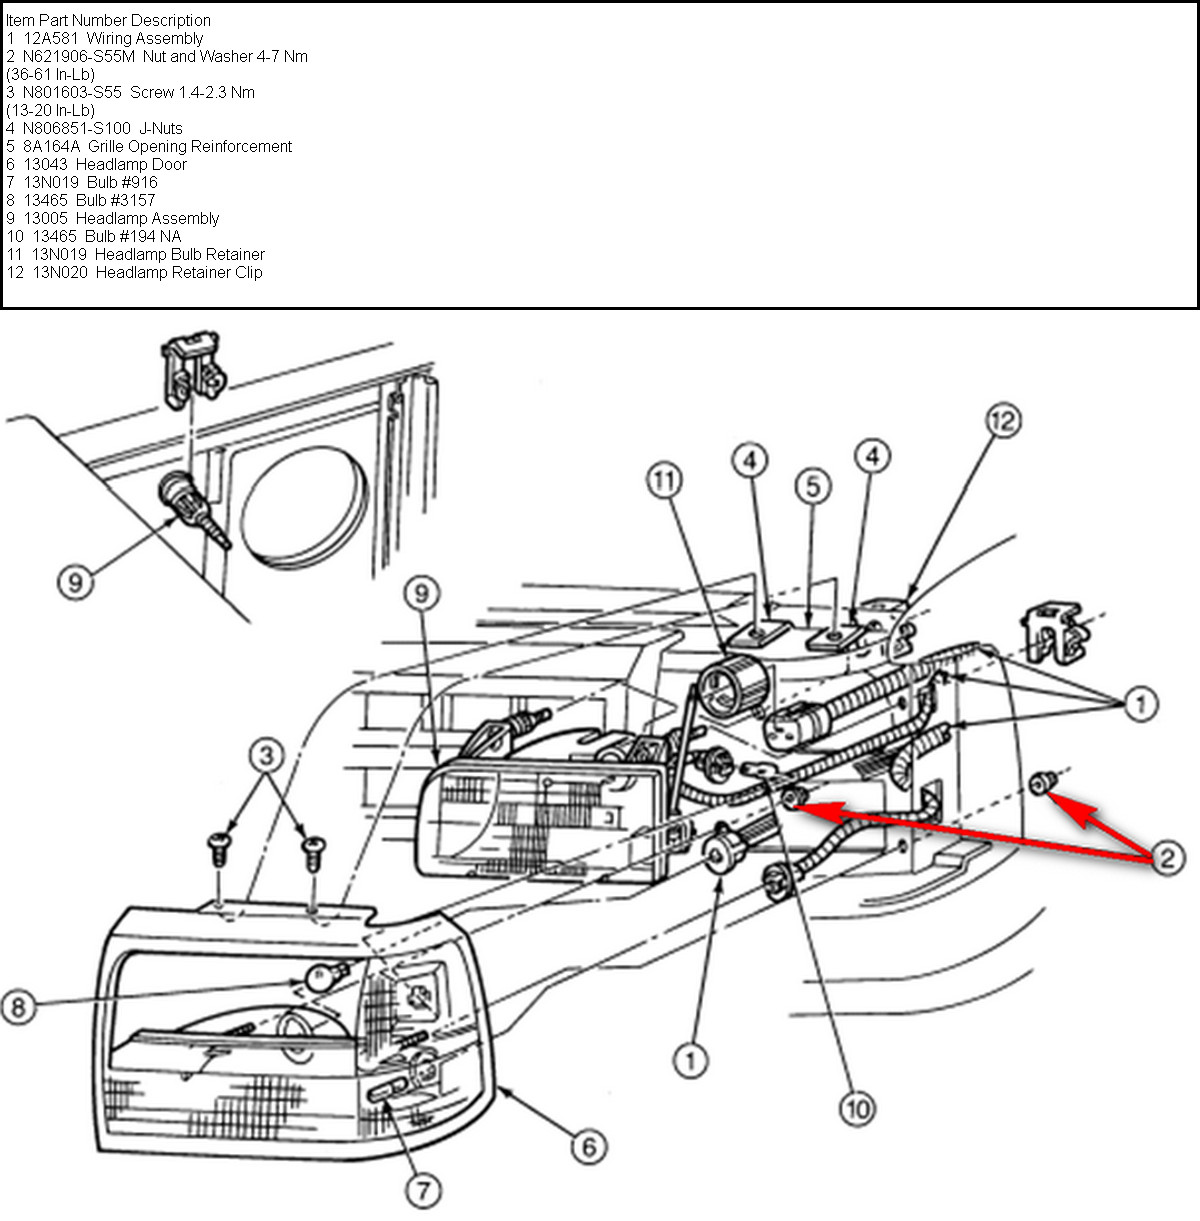 f150 radiator diagram  f150  free engine image for user